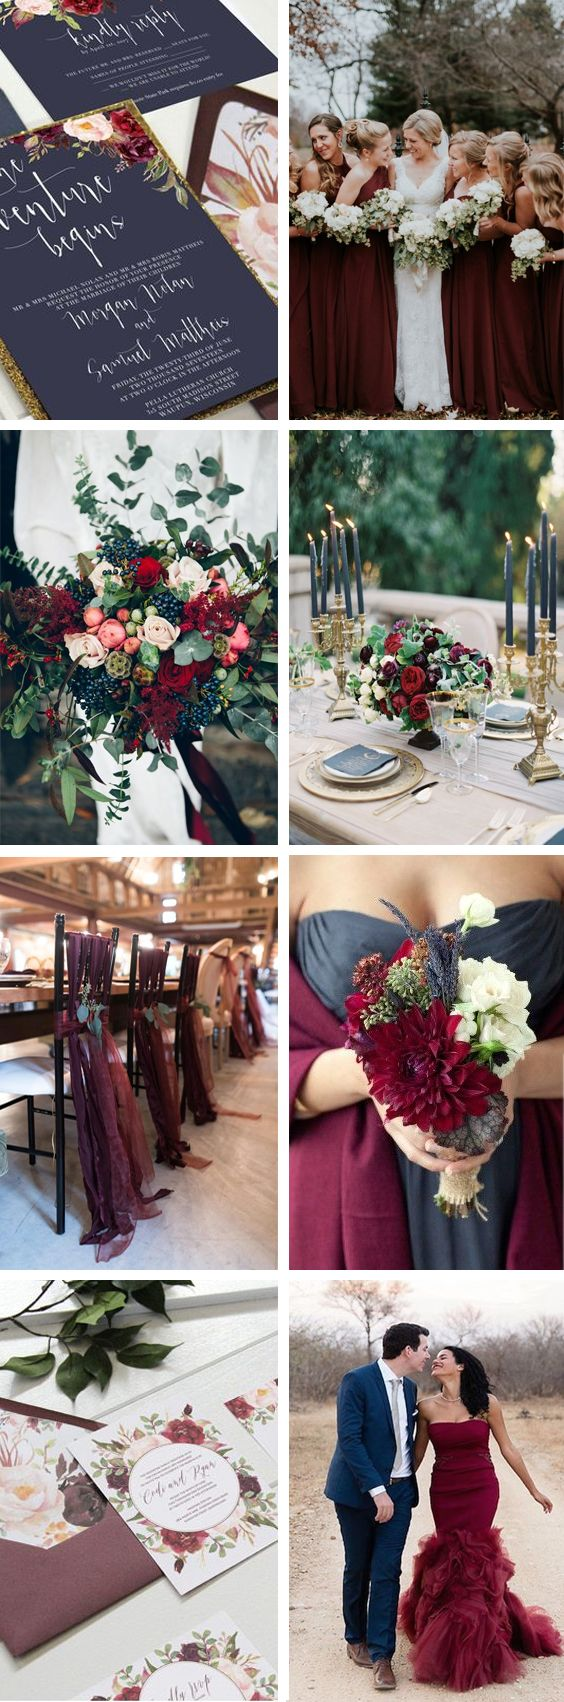 navy and marsala wedding navy wedding marsala wedding